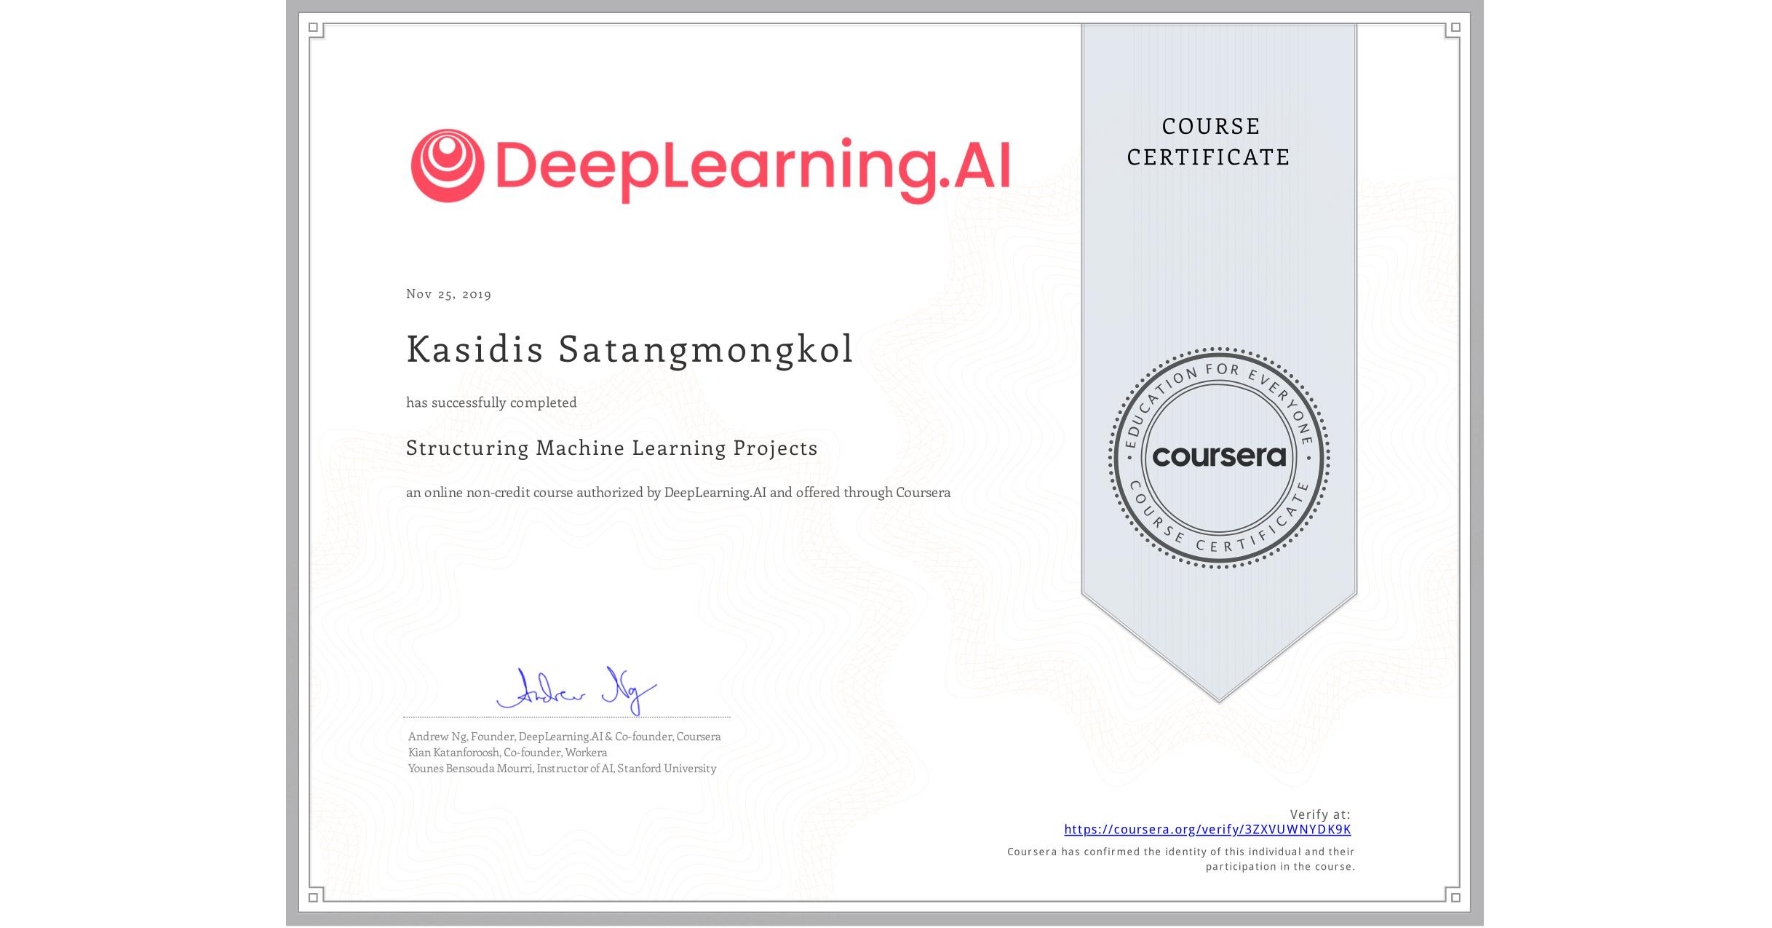 View certificate for KASIDIS SATANGMONGKOL, Structuring Machine Learning Projects, an online non-credit course authorized by DeepLearning.AI and offered through Coursera